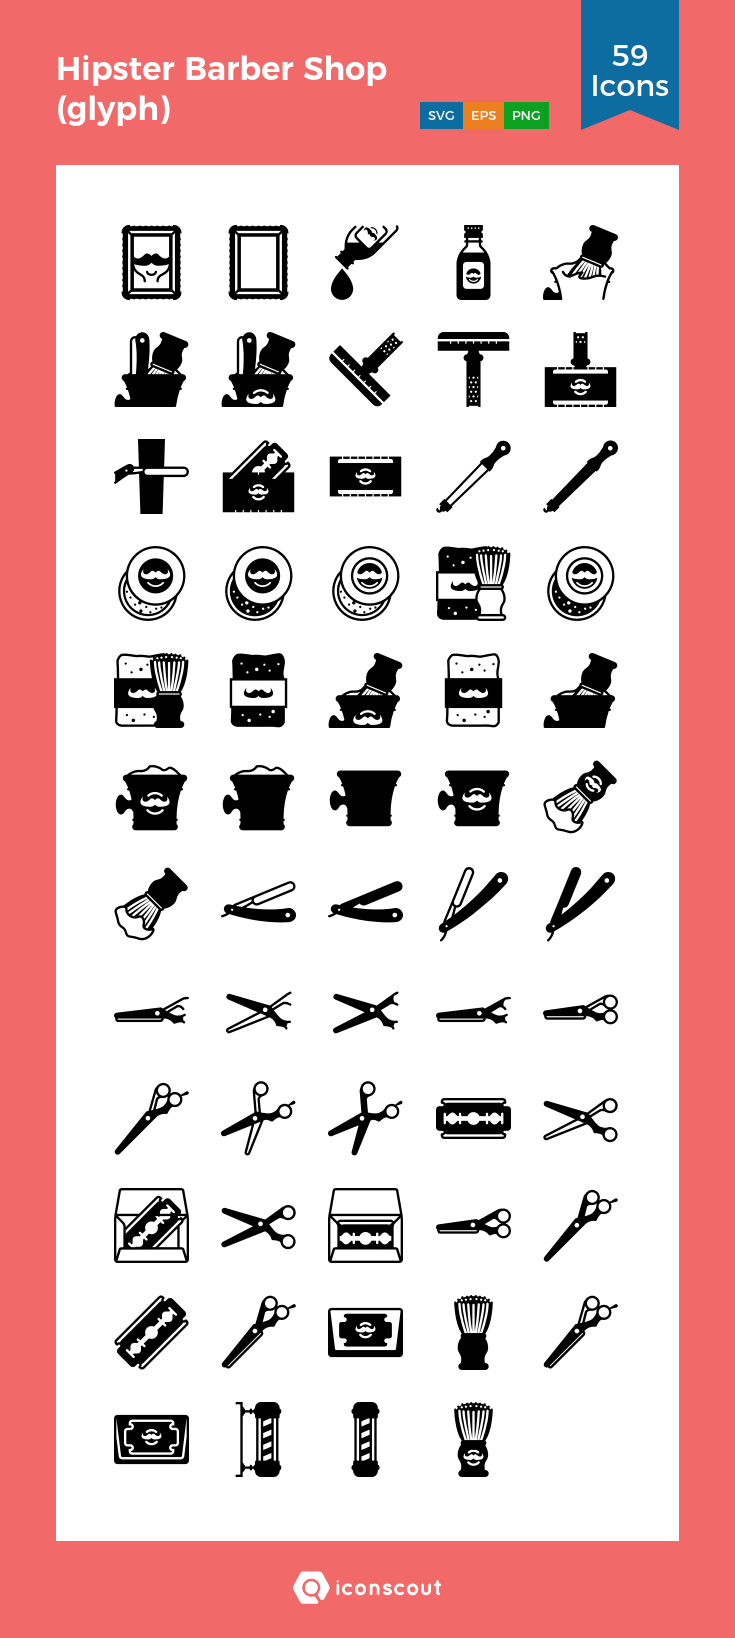 Download Hipster Barber Shop (glyph) Icon pack Available